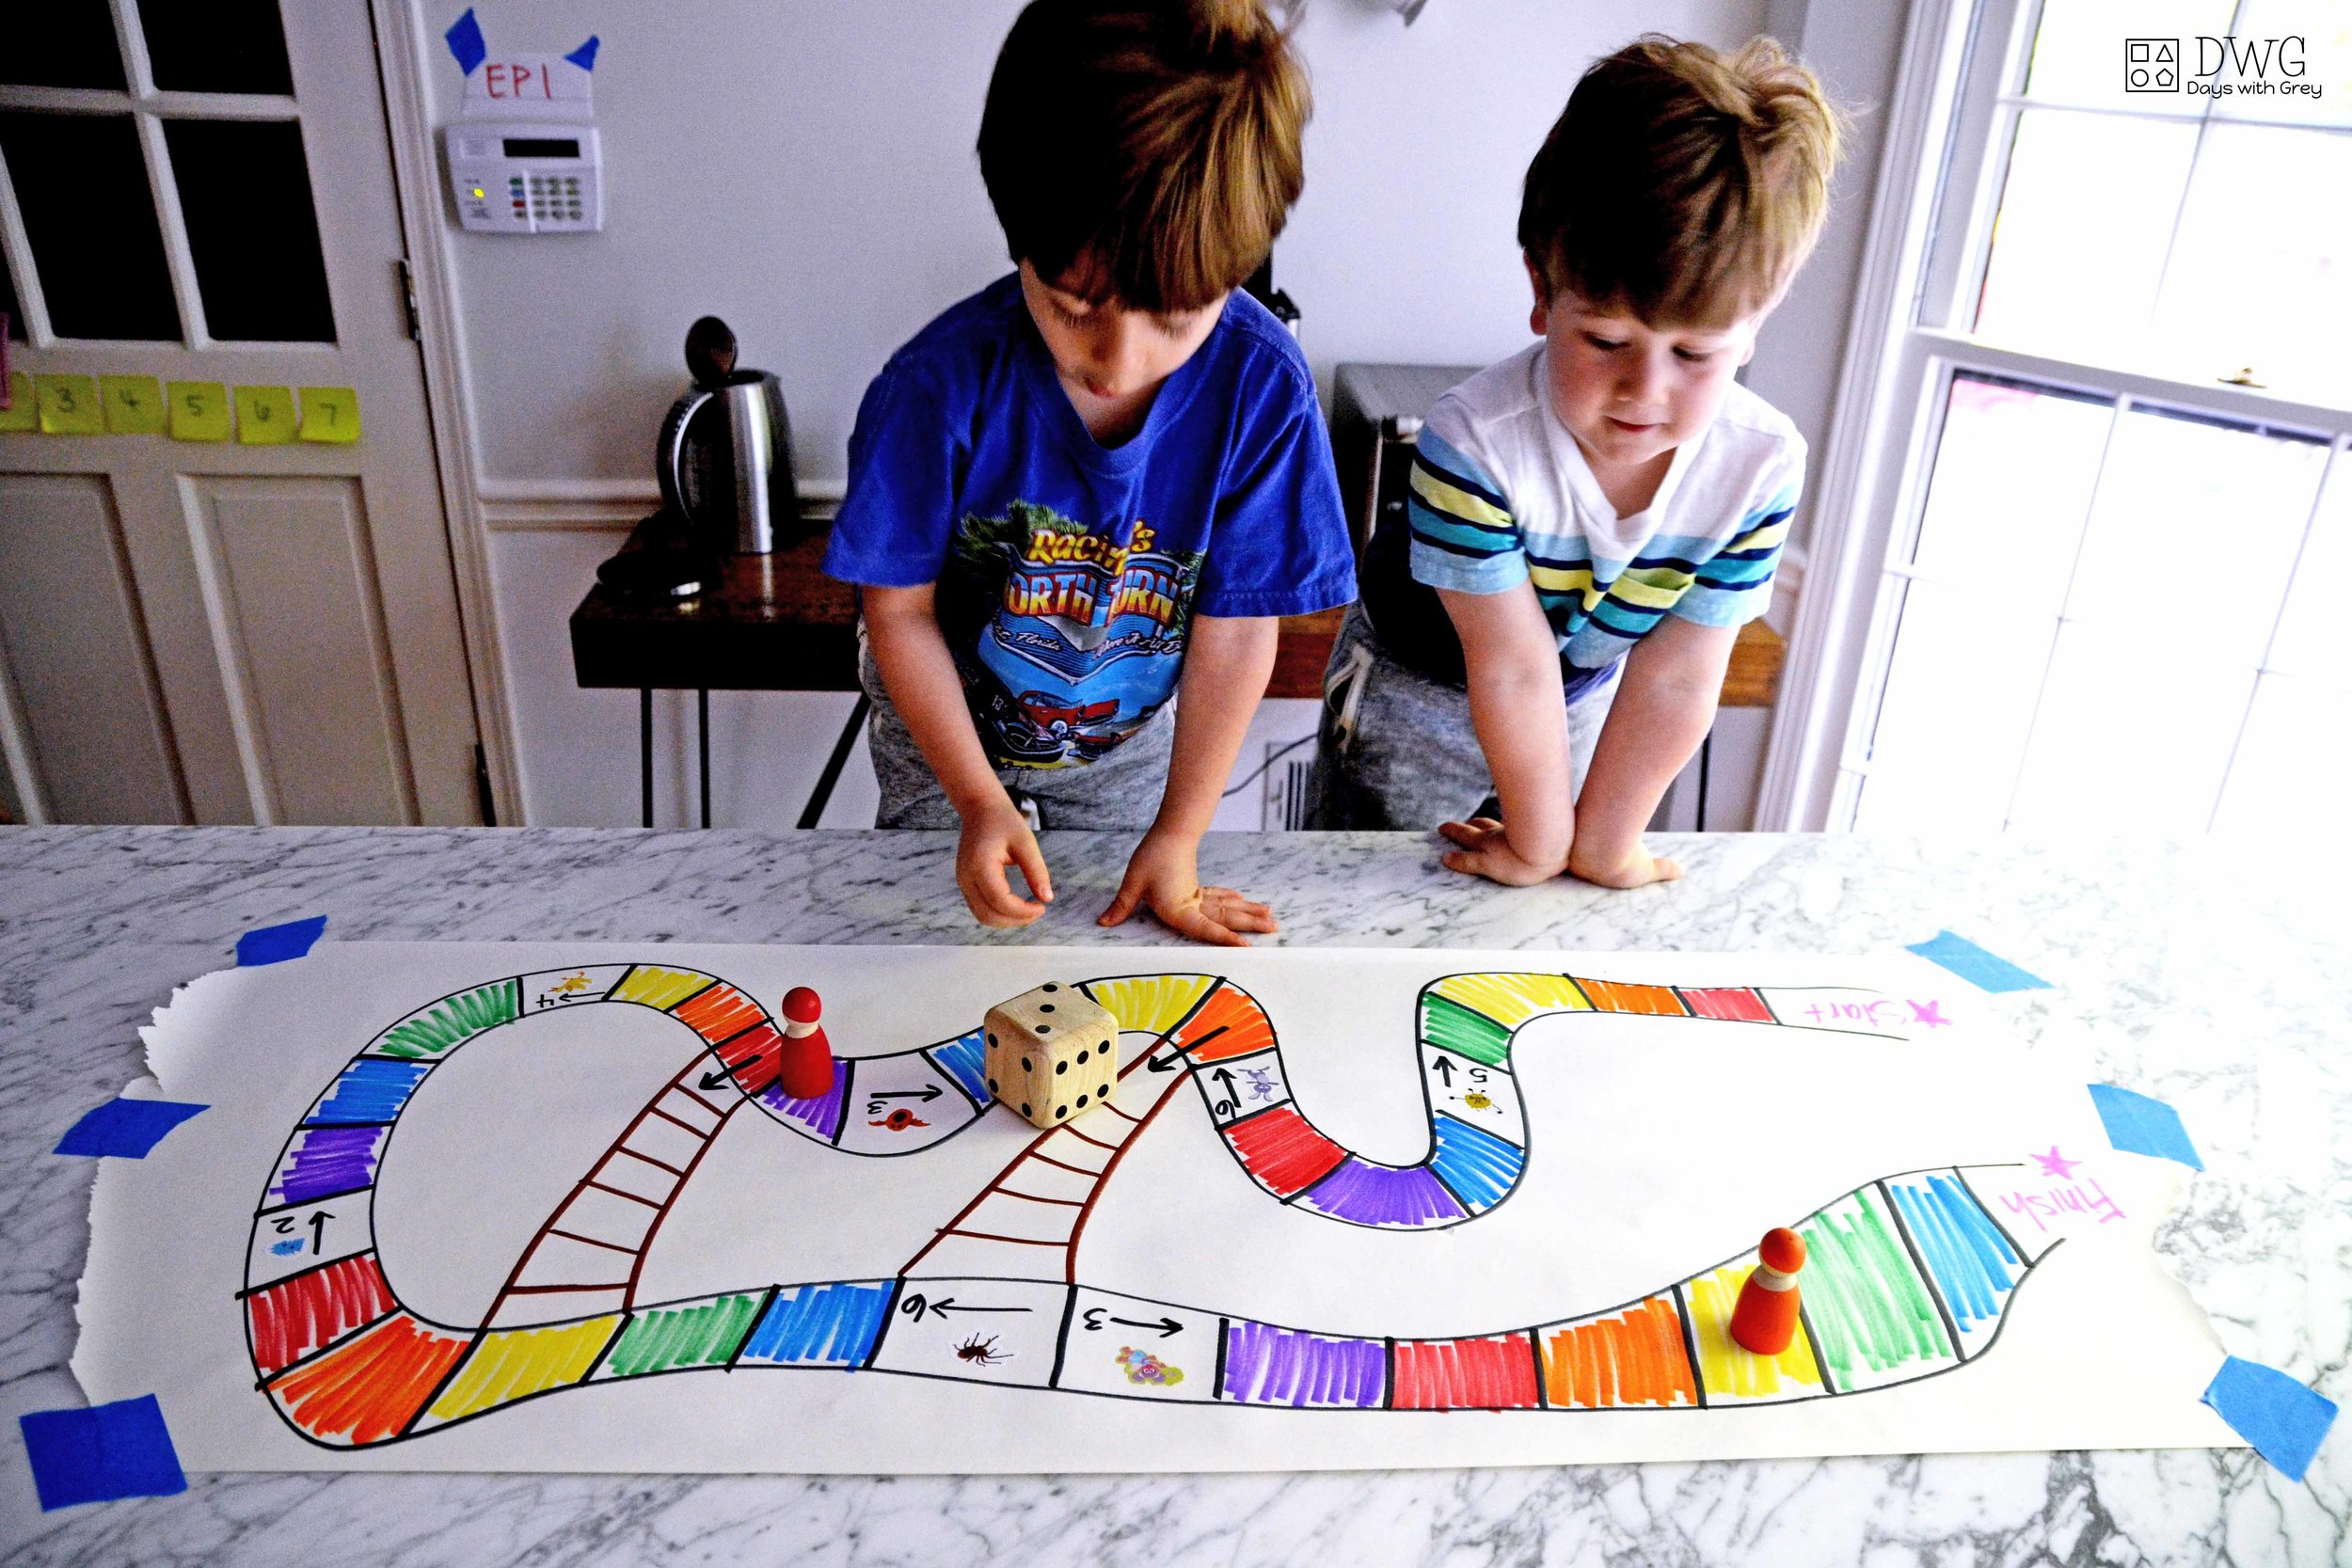 DIY board game for kids